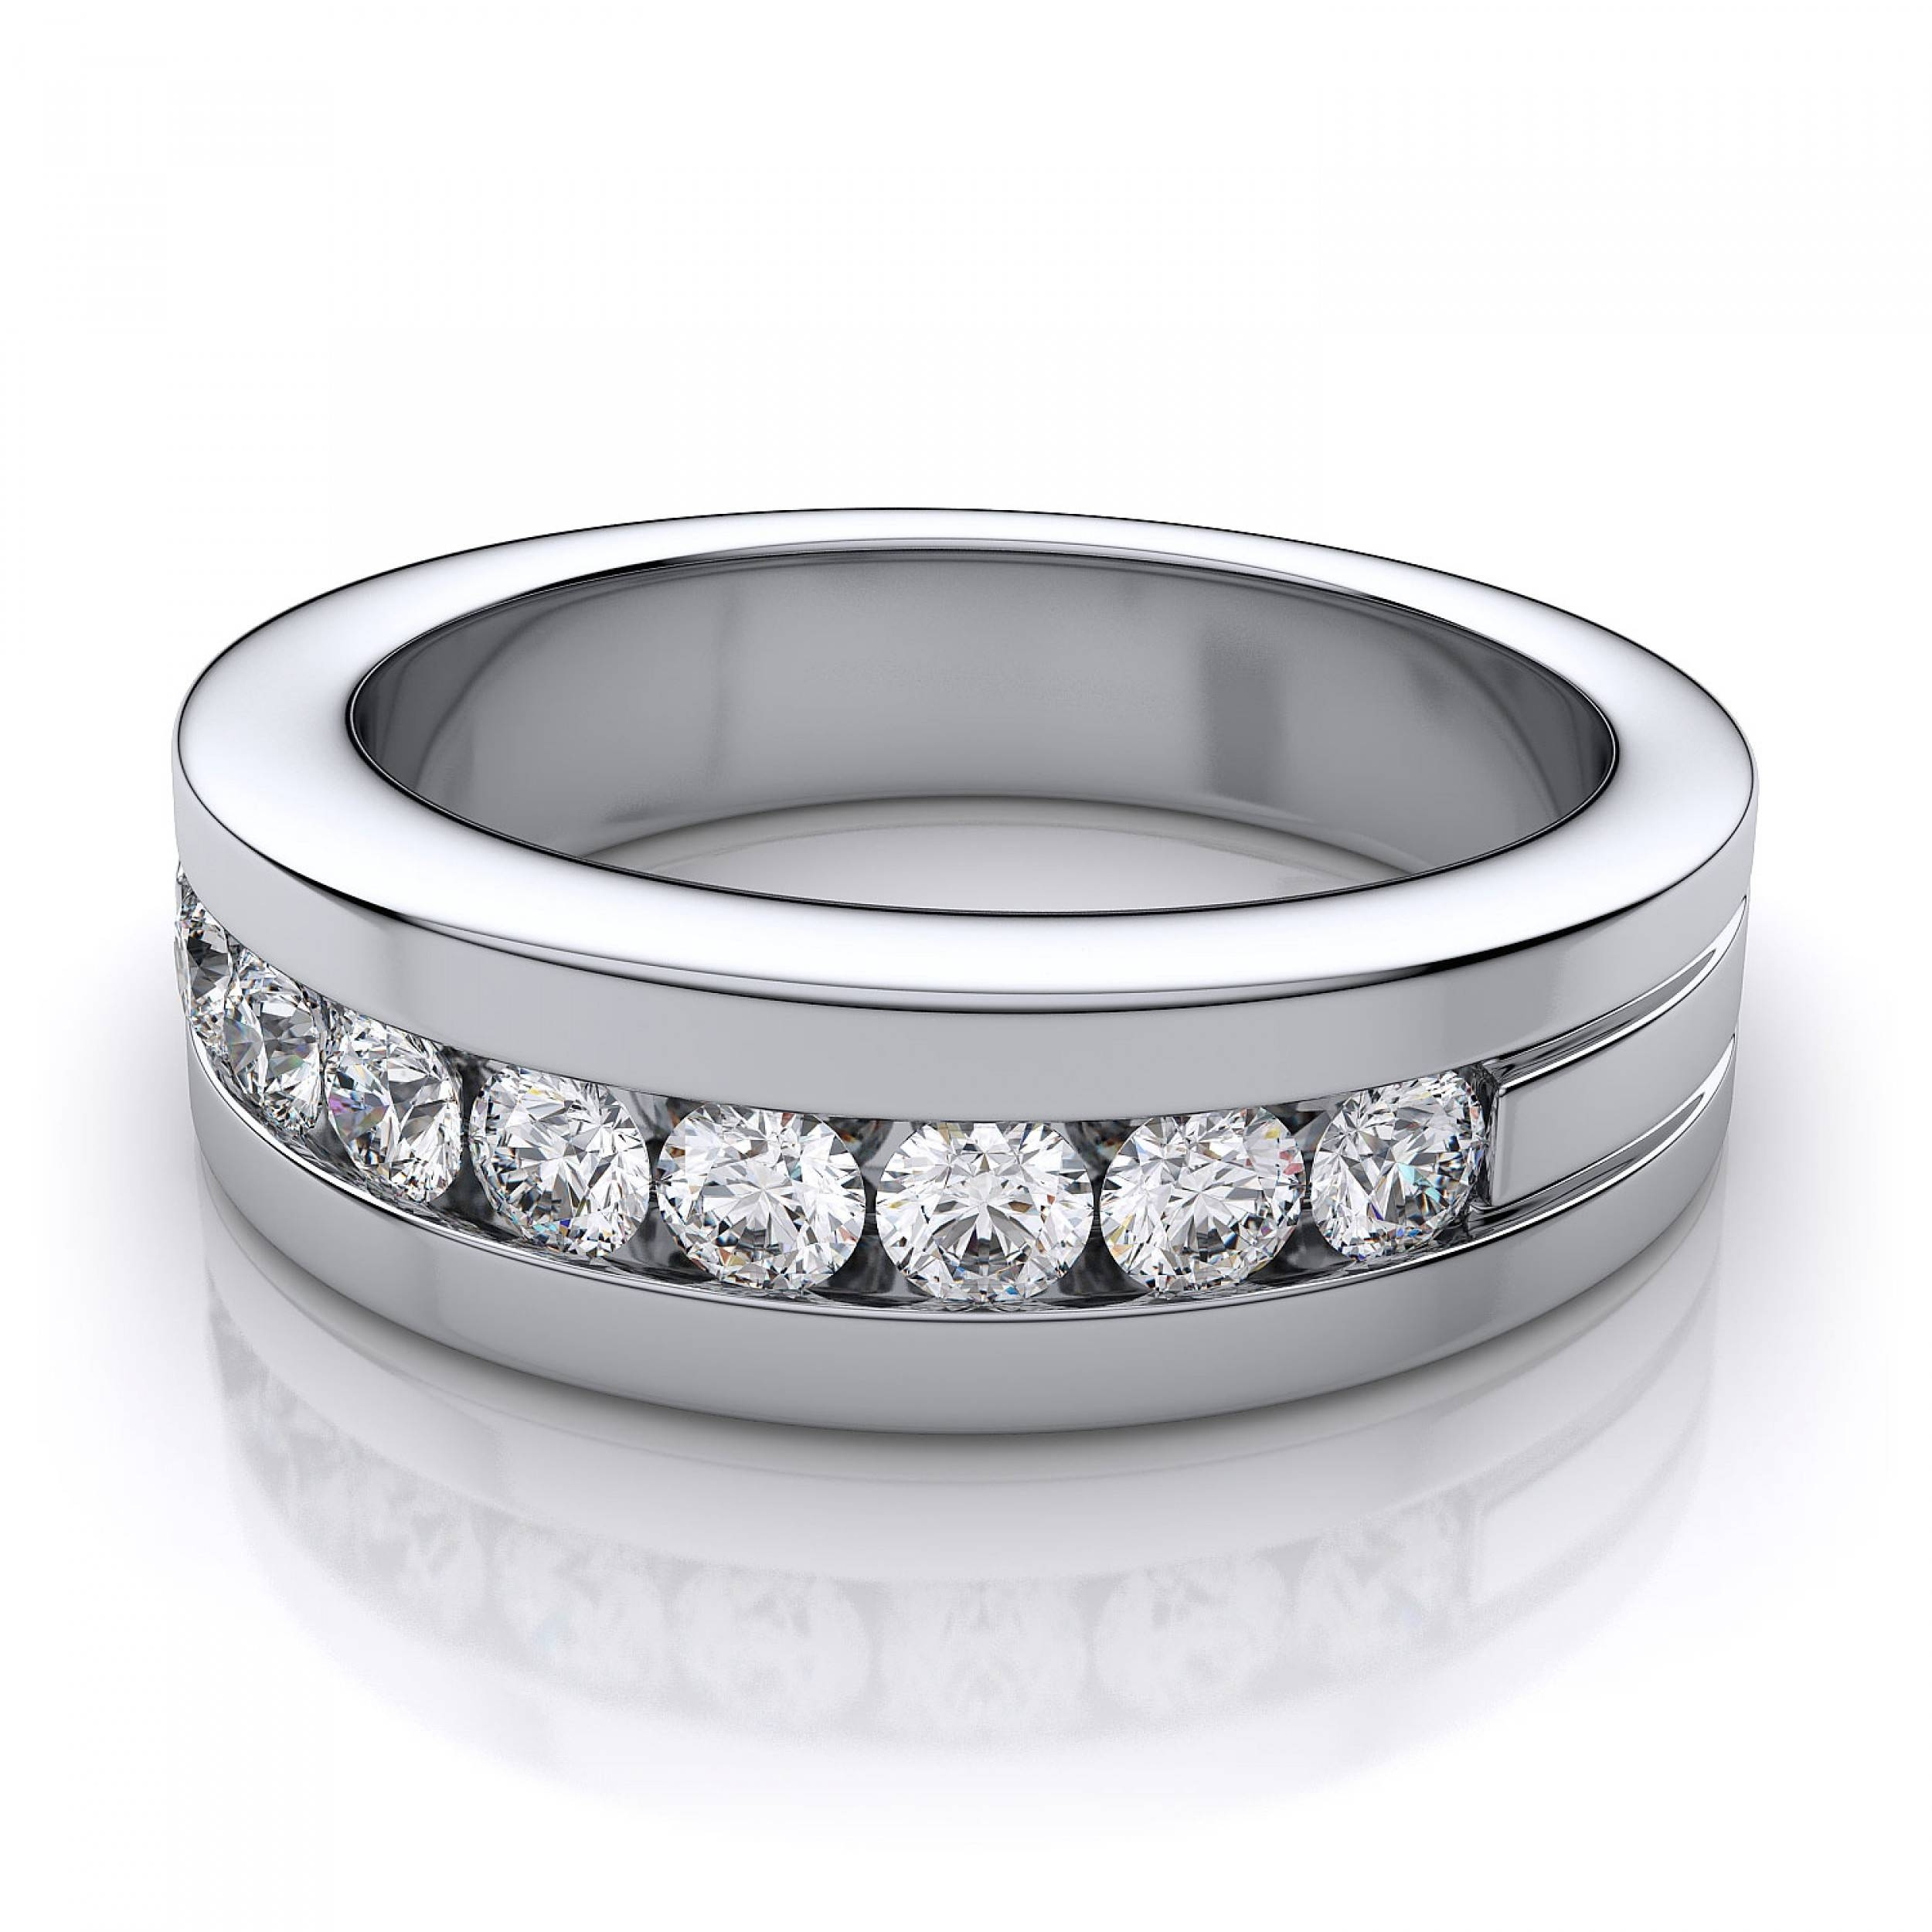 6.3Mm Men's Channel Set Diamond Wedding Ring In 18K White Gold Throughout Wedding Rings With Diamonds (Gallery 9 of 15)